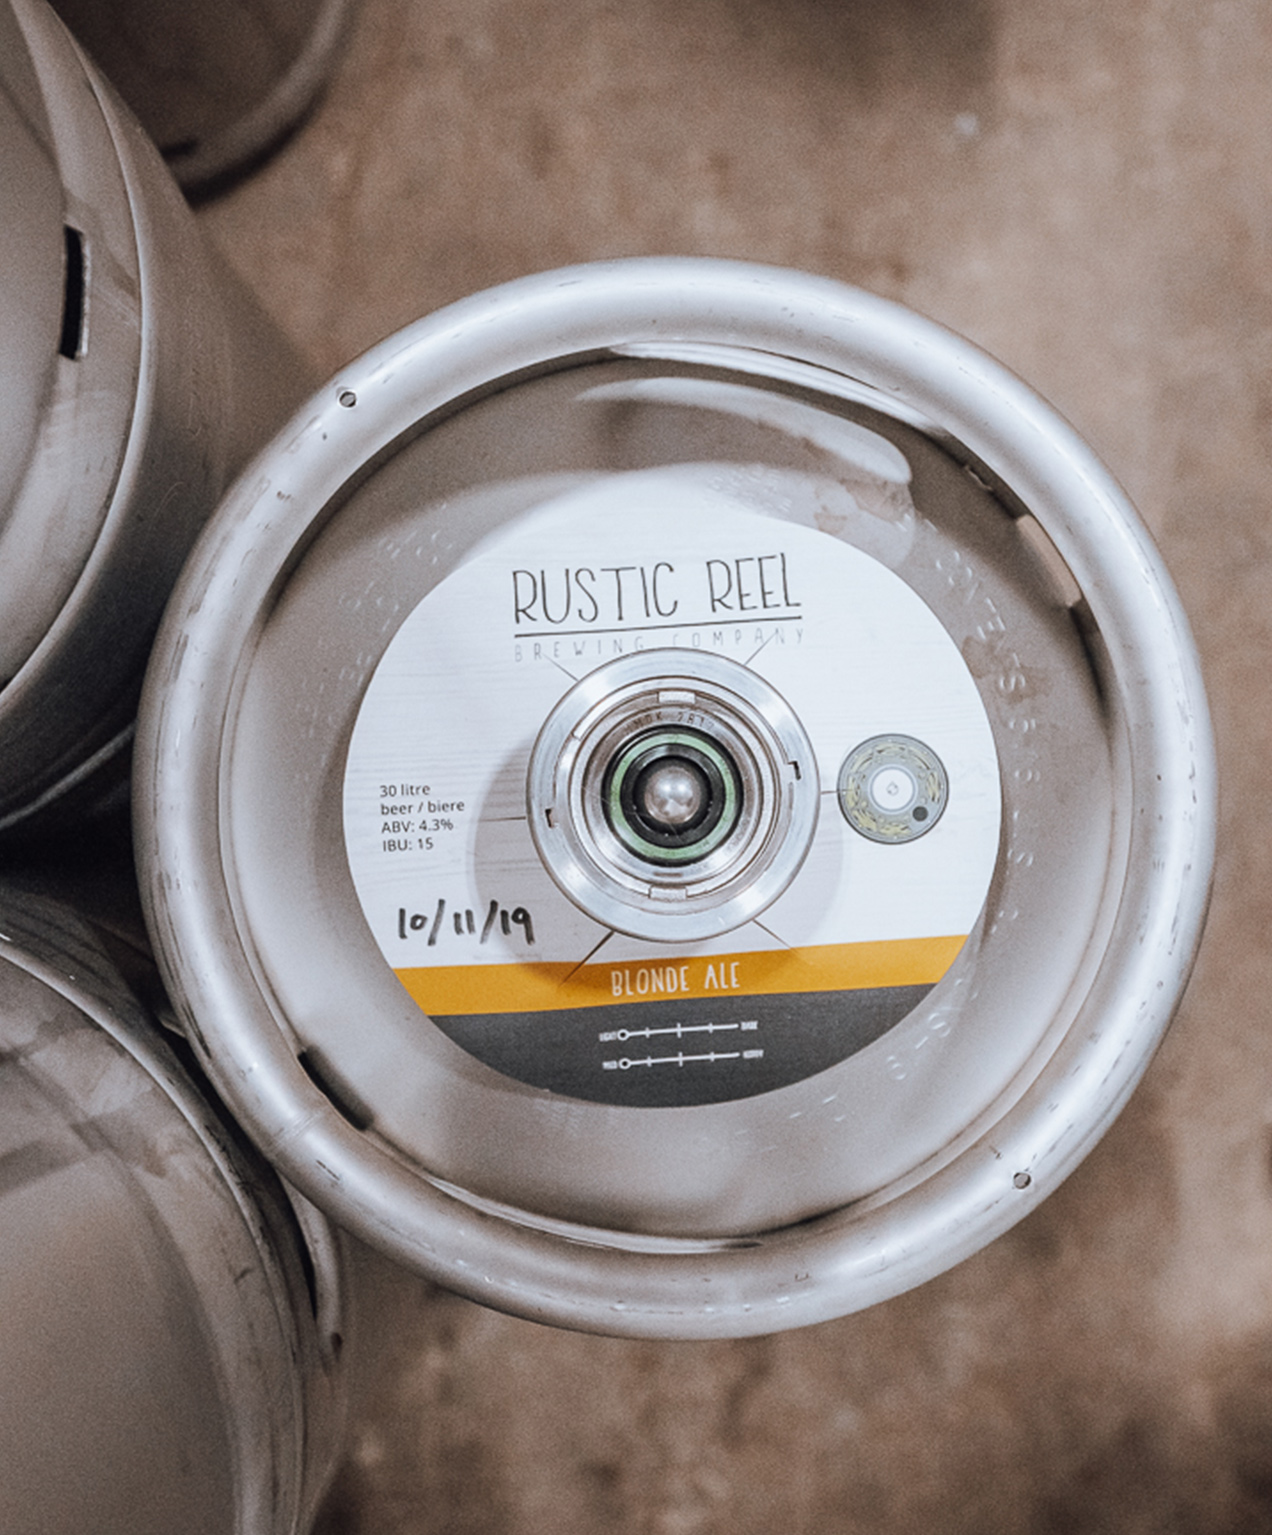 kelowna brewery marketing keg photo